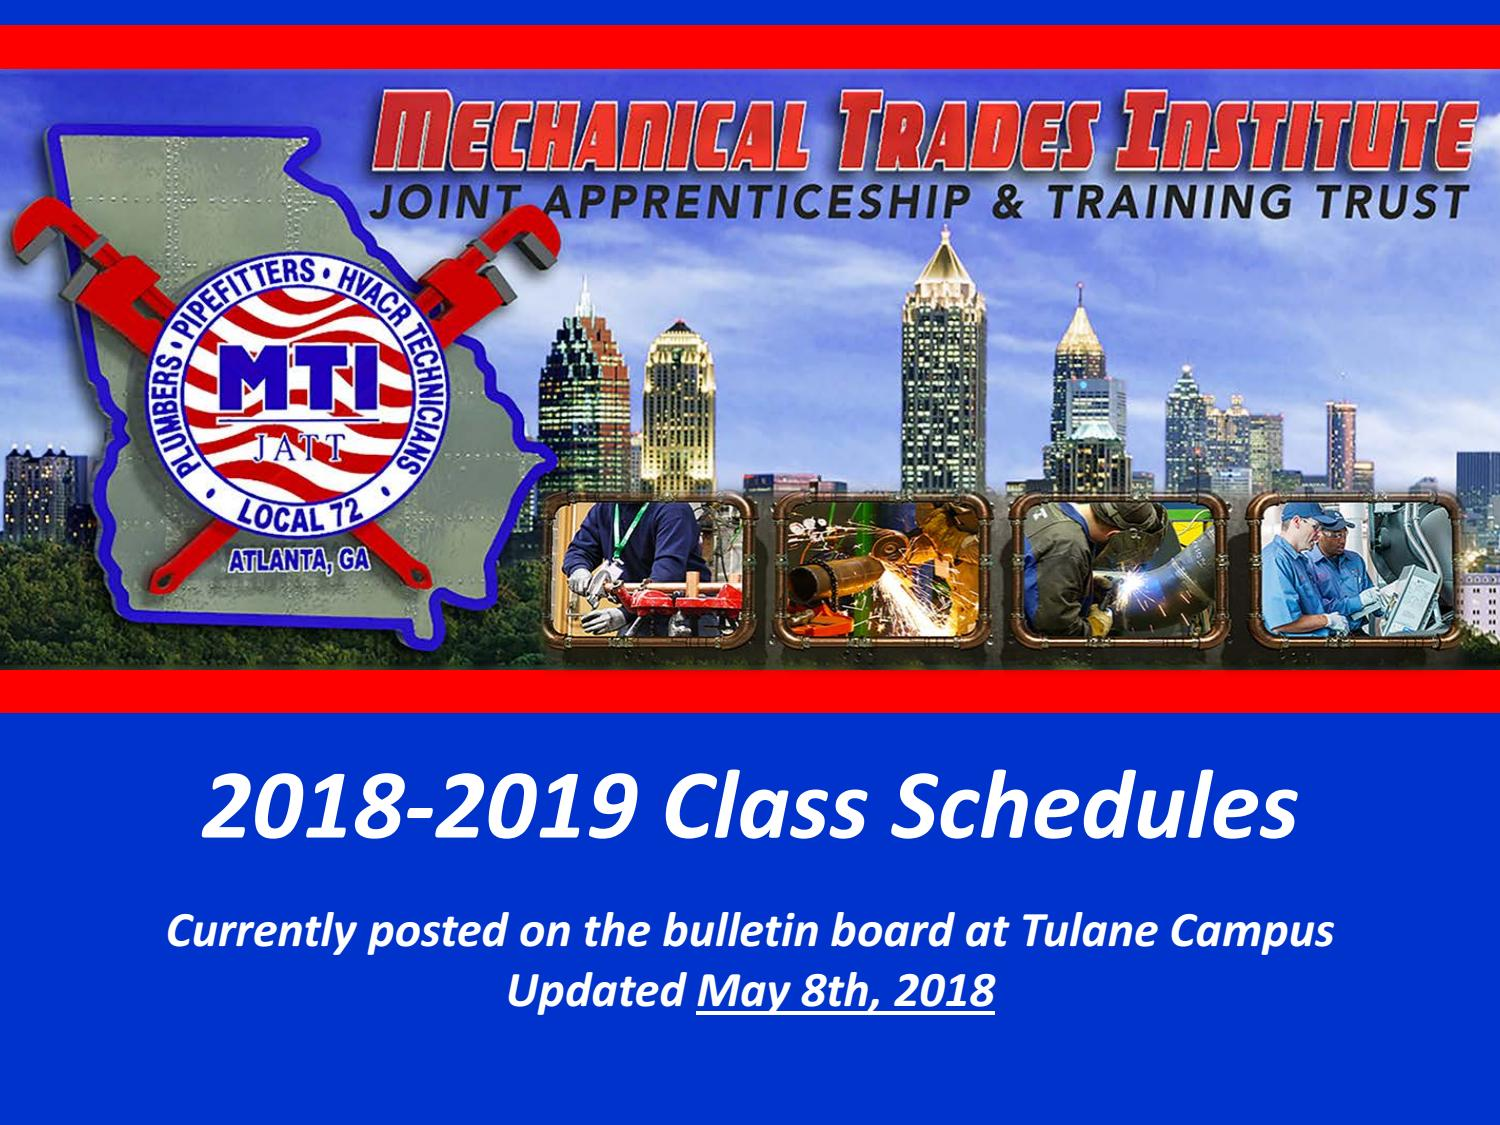 2018 2018 class schedules for website (may 8, 2018) by mti-jatt